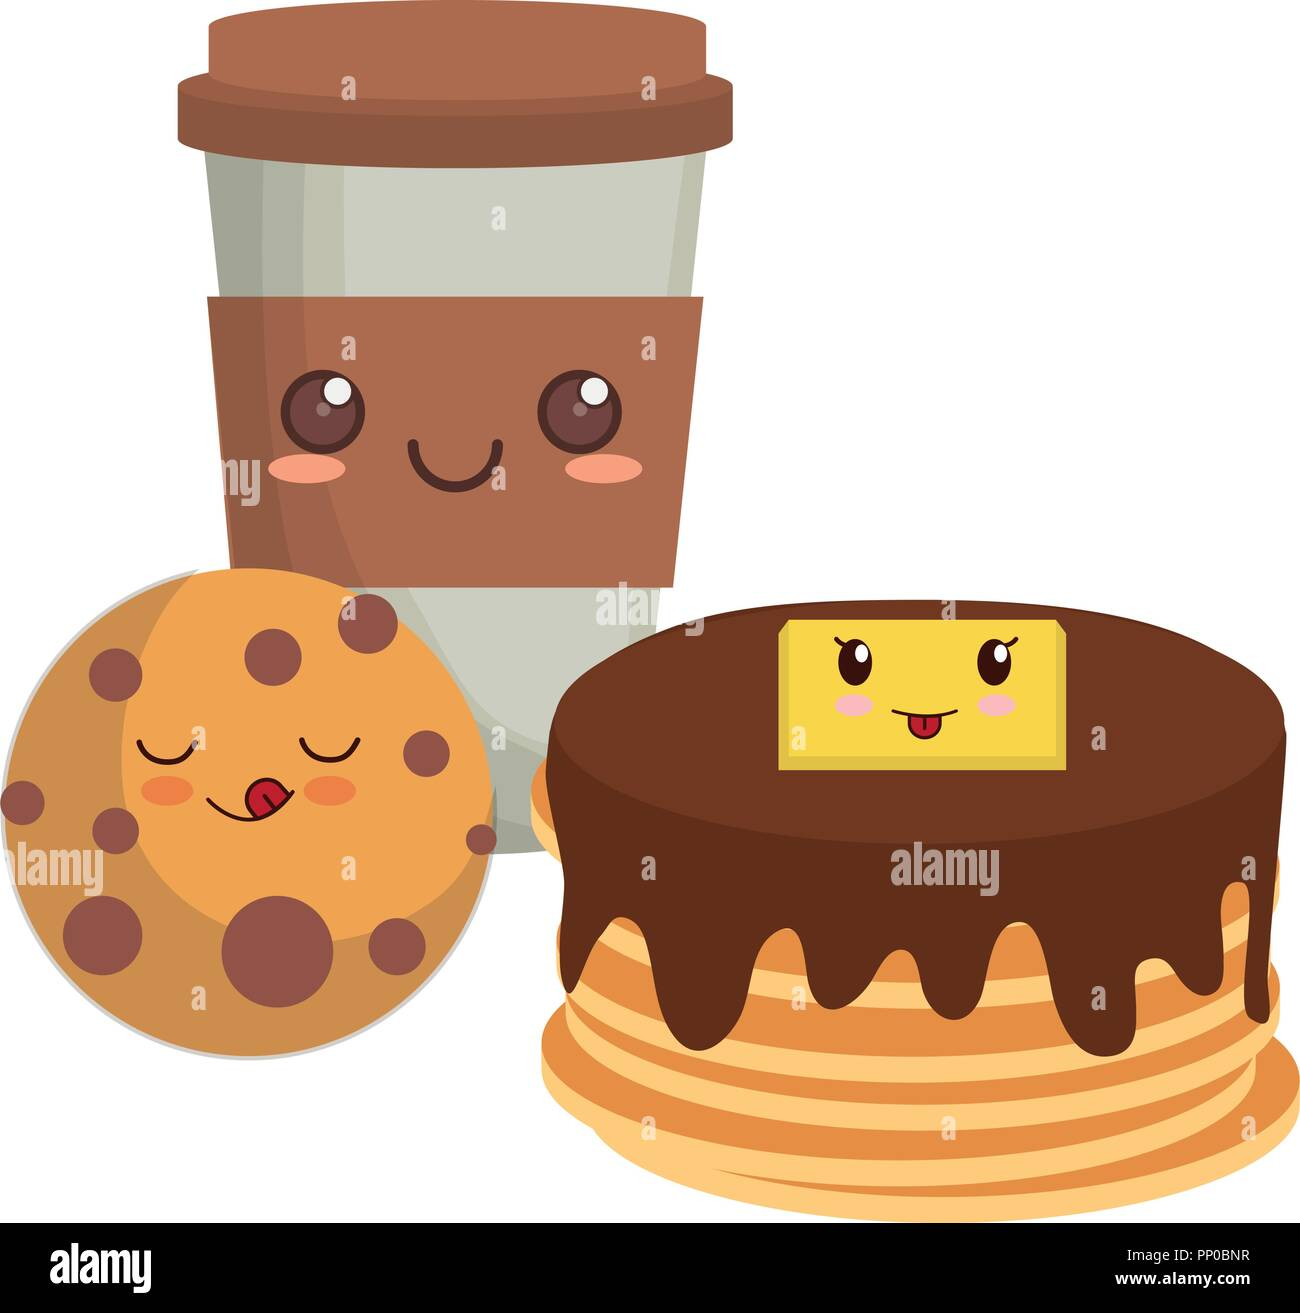 kawaii pancakes with coffee cup and cookie over white background, vector illustration - Stock Image